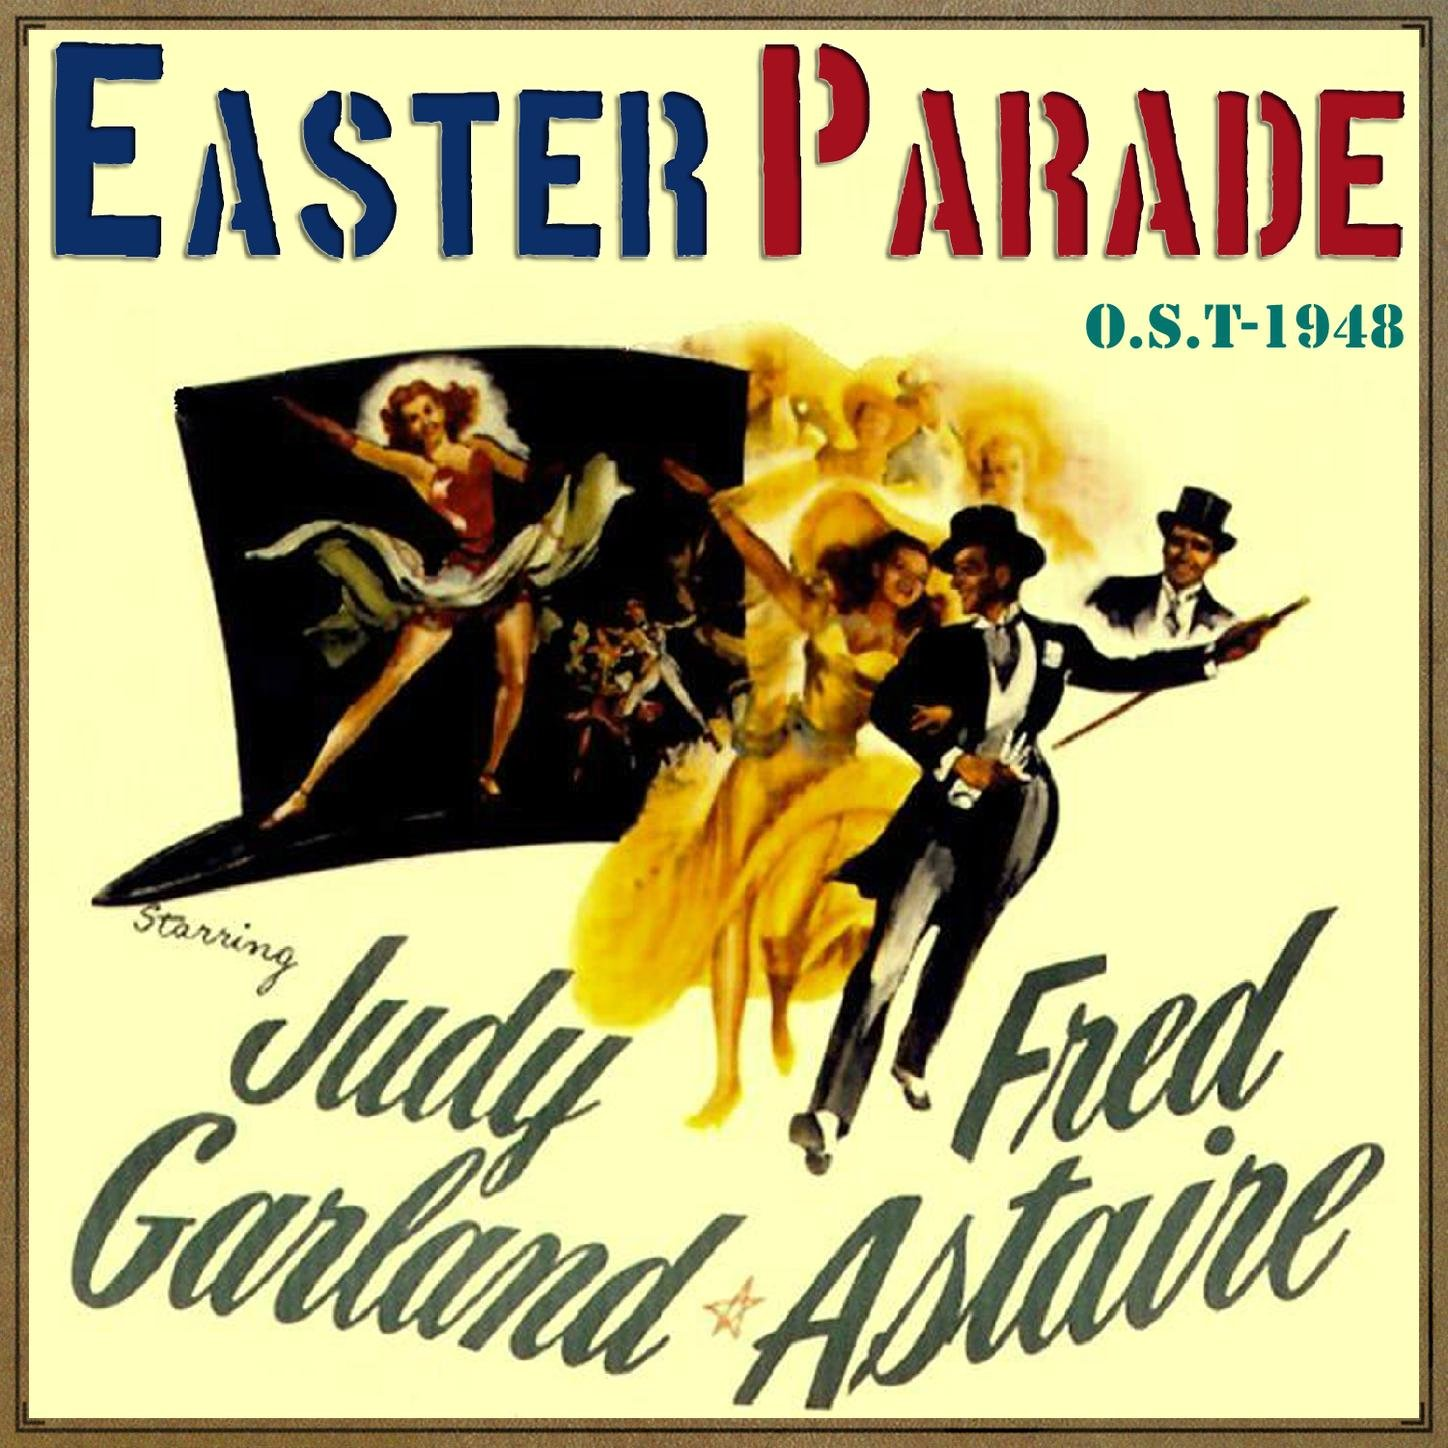 Song lyrics to Easter Parade (1933). Music and Lyrics by Irving Berlin. Sung by Bing Crosby on Easter Sunday in Holiday Inn, by Judy Garland and Fred Astaire in Easter Parade